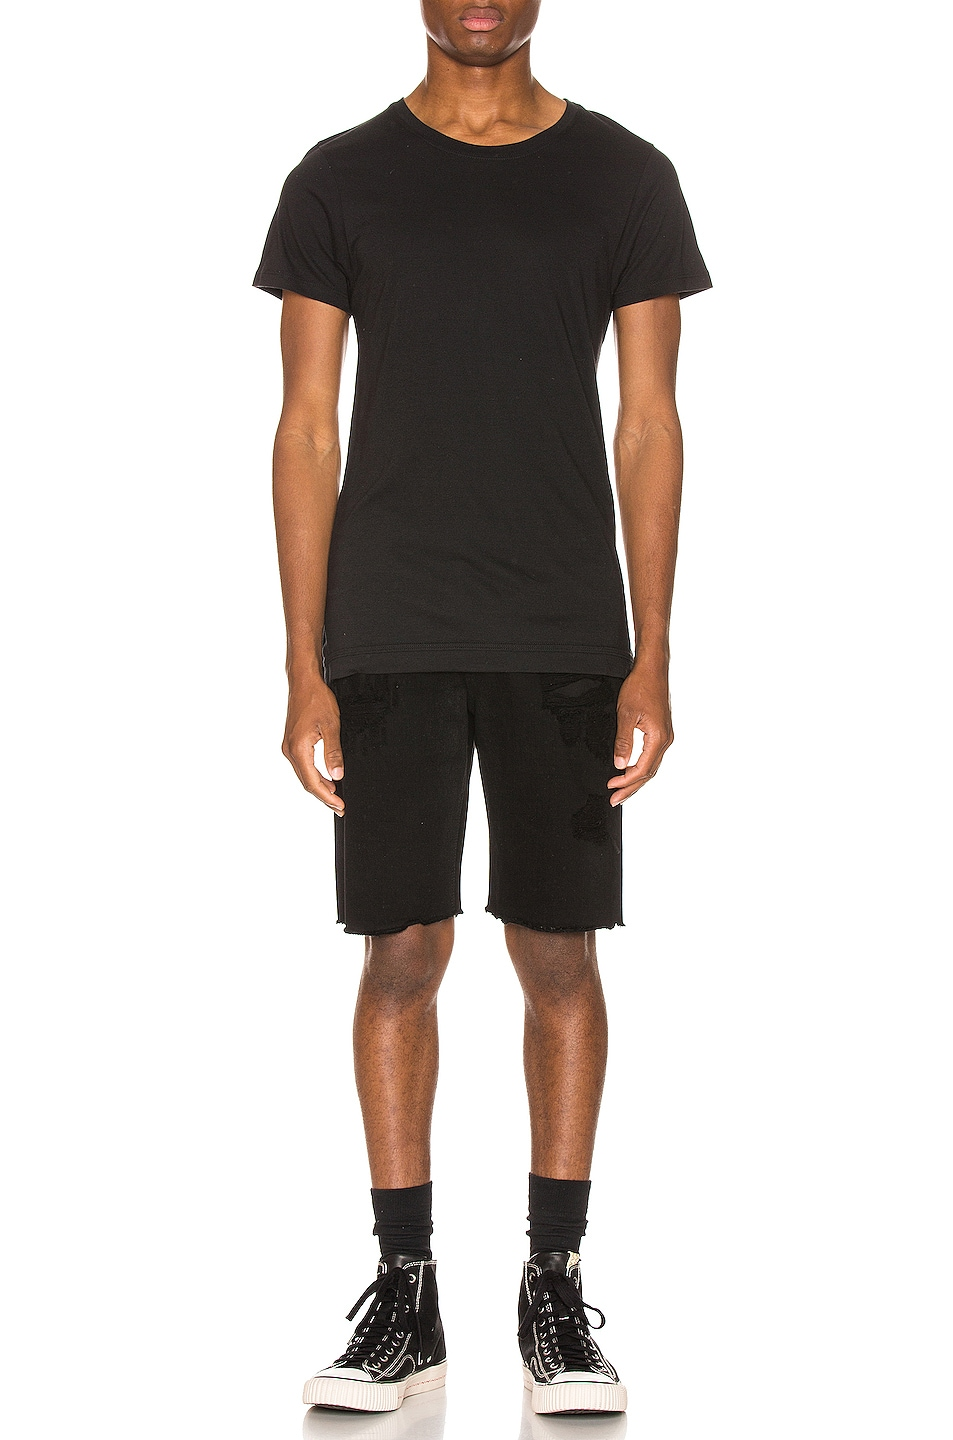 Image 5 of RtA Distressed Shorts in Black Coating